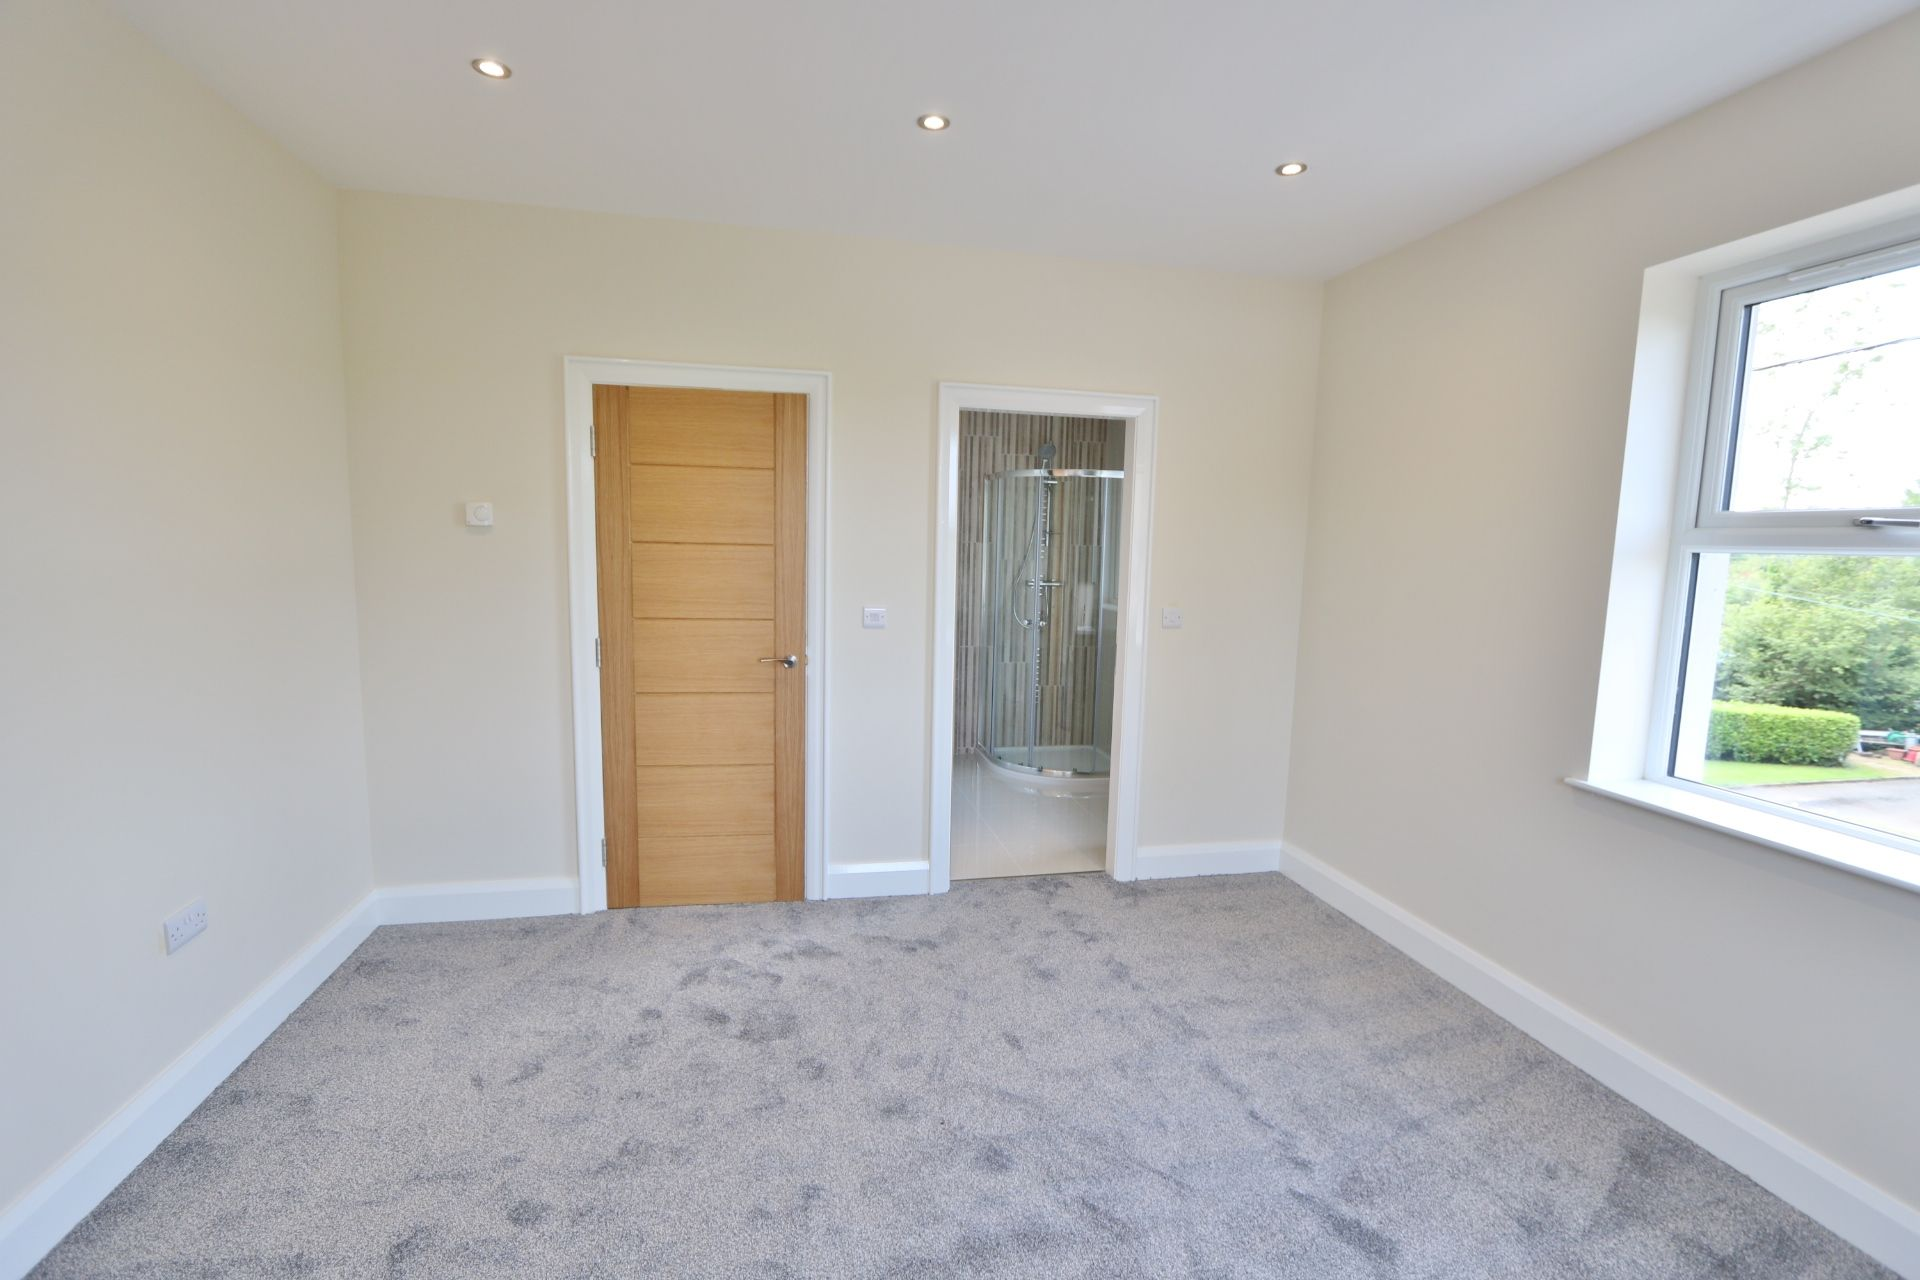 3 bedroom detached house For Sale in Milltown - Photograph 12